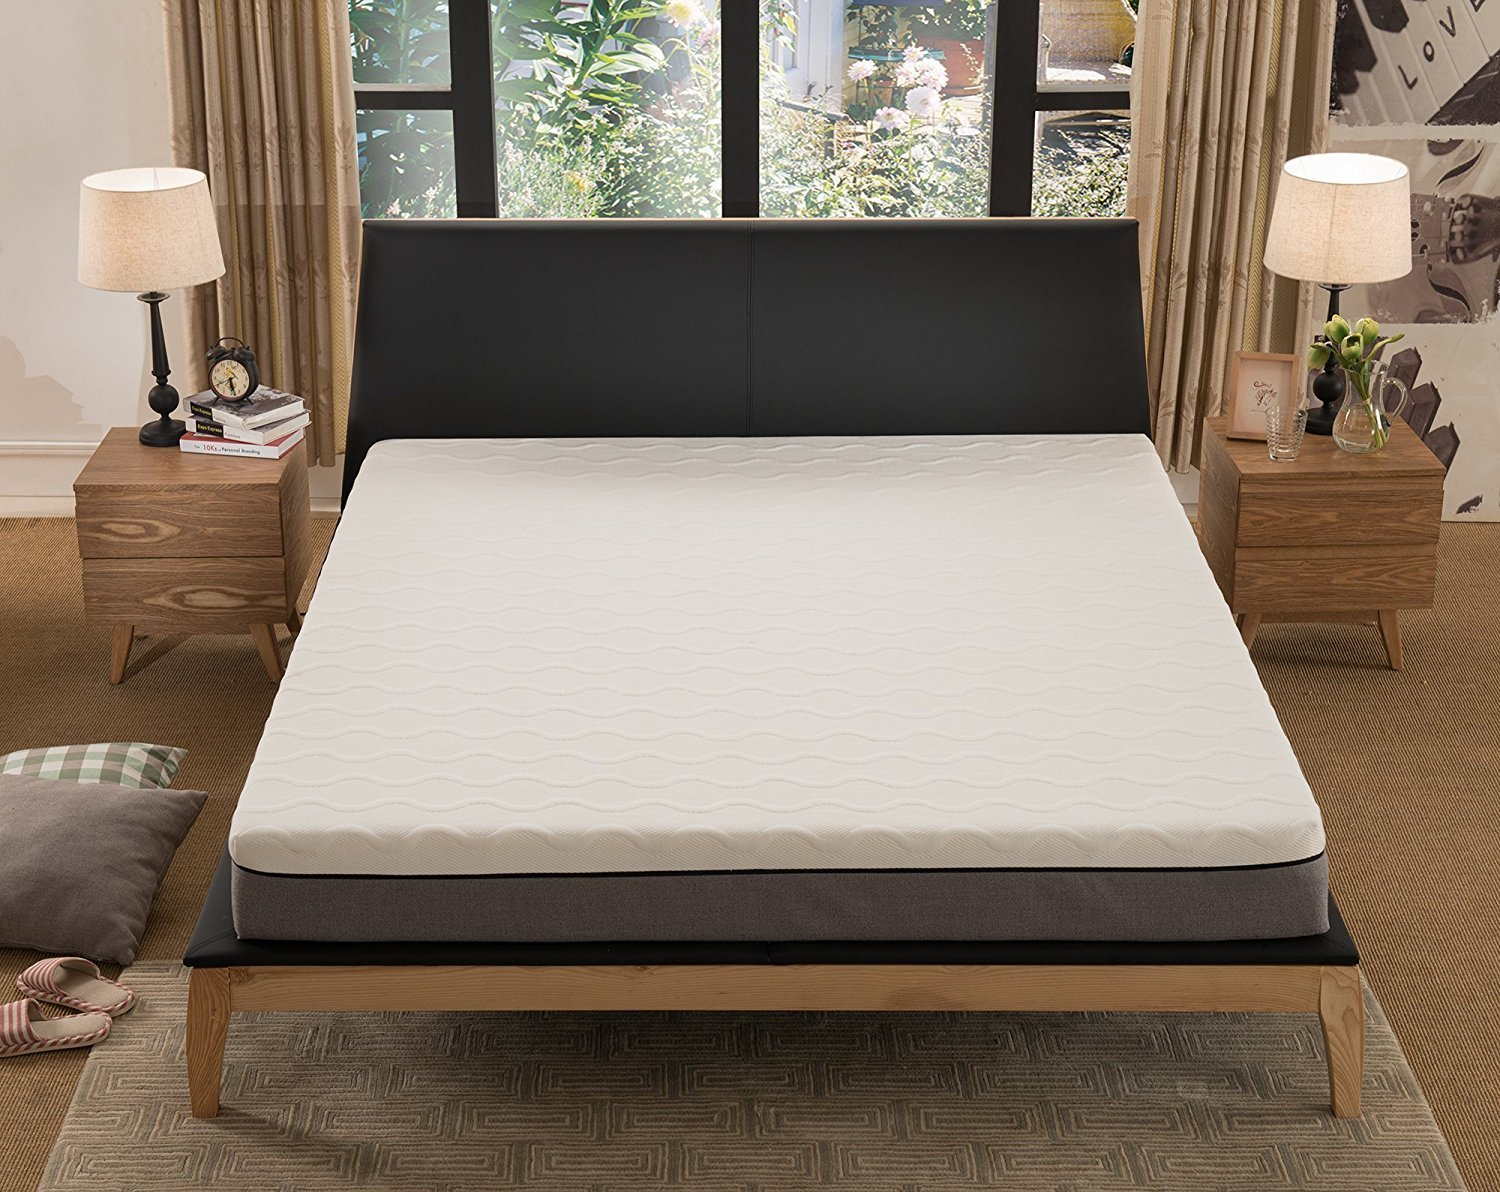 NOFFA 8-inch Memory Foam Mattress Relieve Body Pressure Comfortable Bed Mattress (King Size)